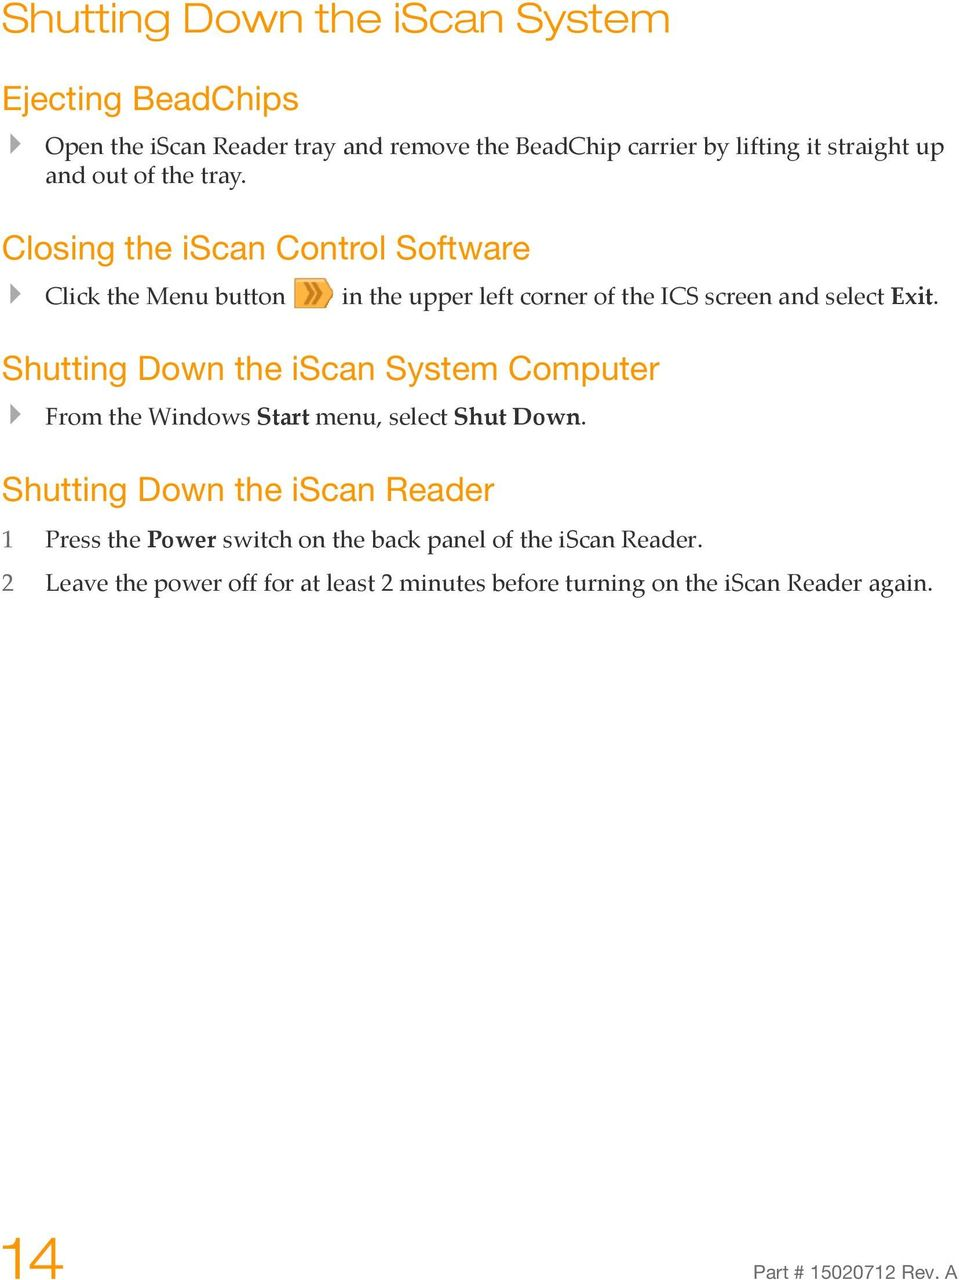 Shutting Down the iscan System Computer From the Windows Start menu, select Shut Down.